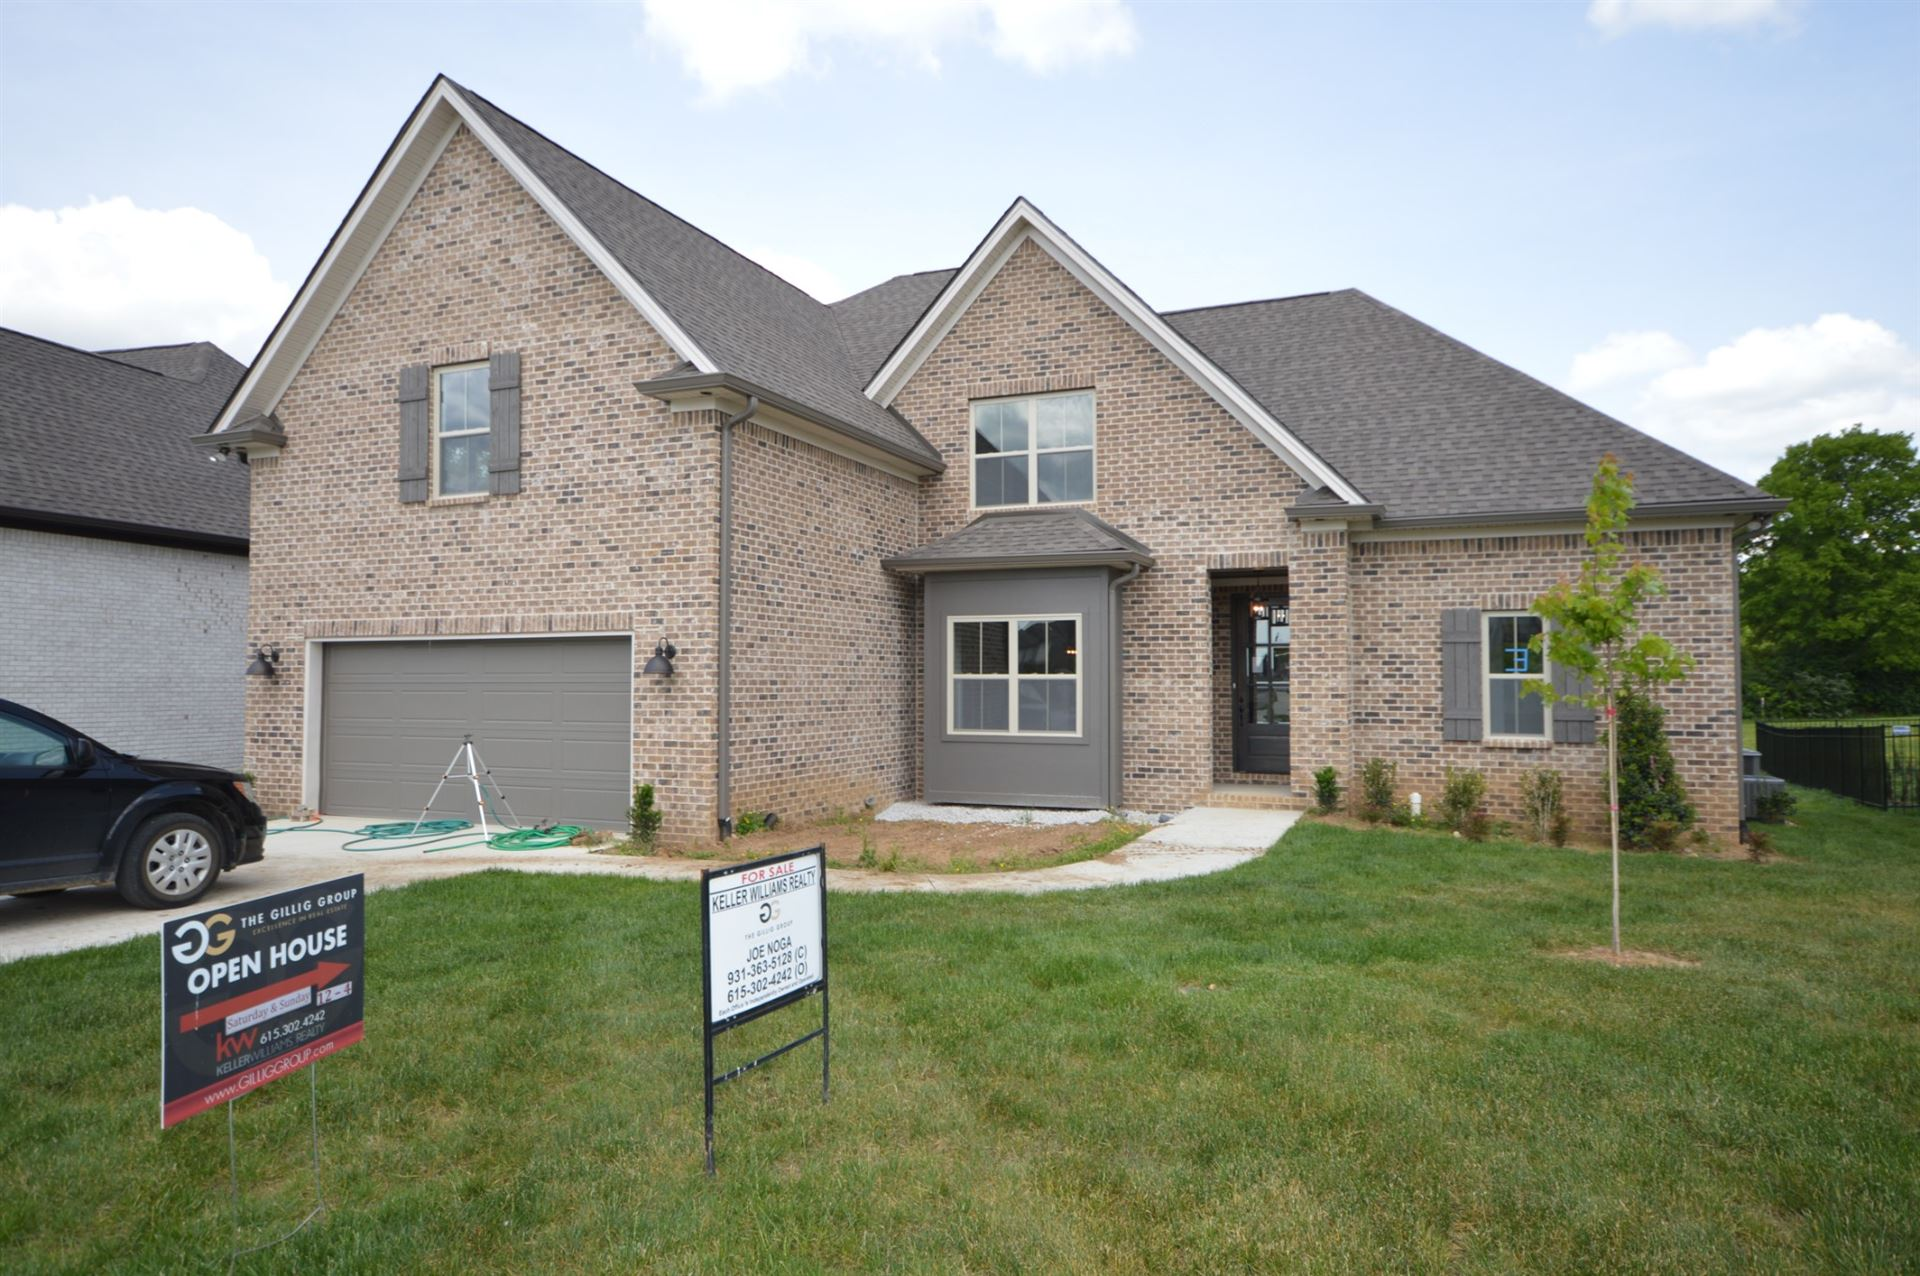 Photo of 4075 Miles Johnson Pkwy (3), Spring Hill, TN 37174 (MLS # 2114437)